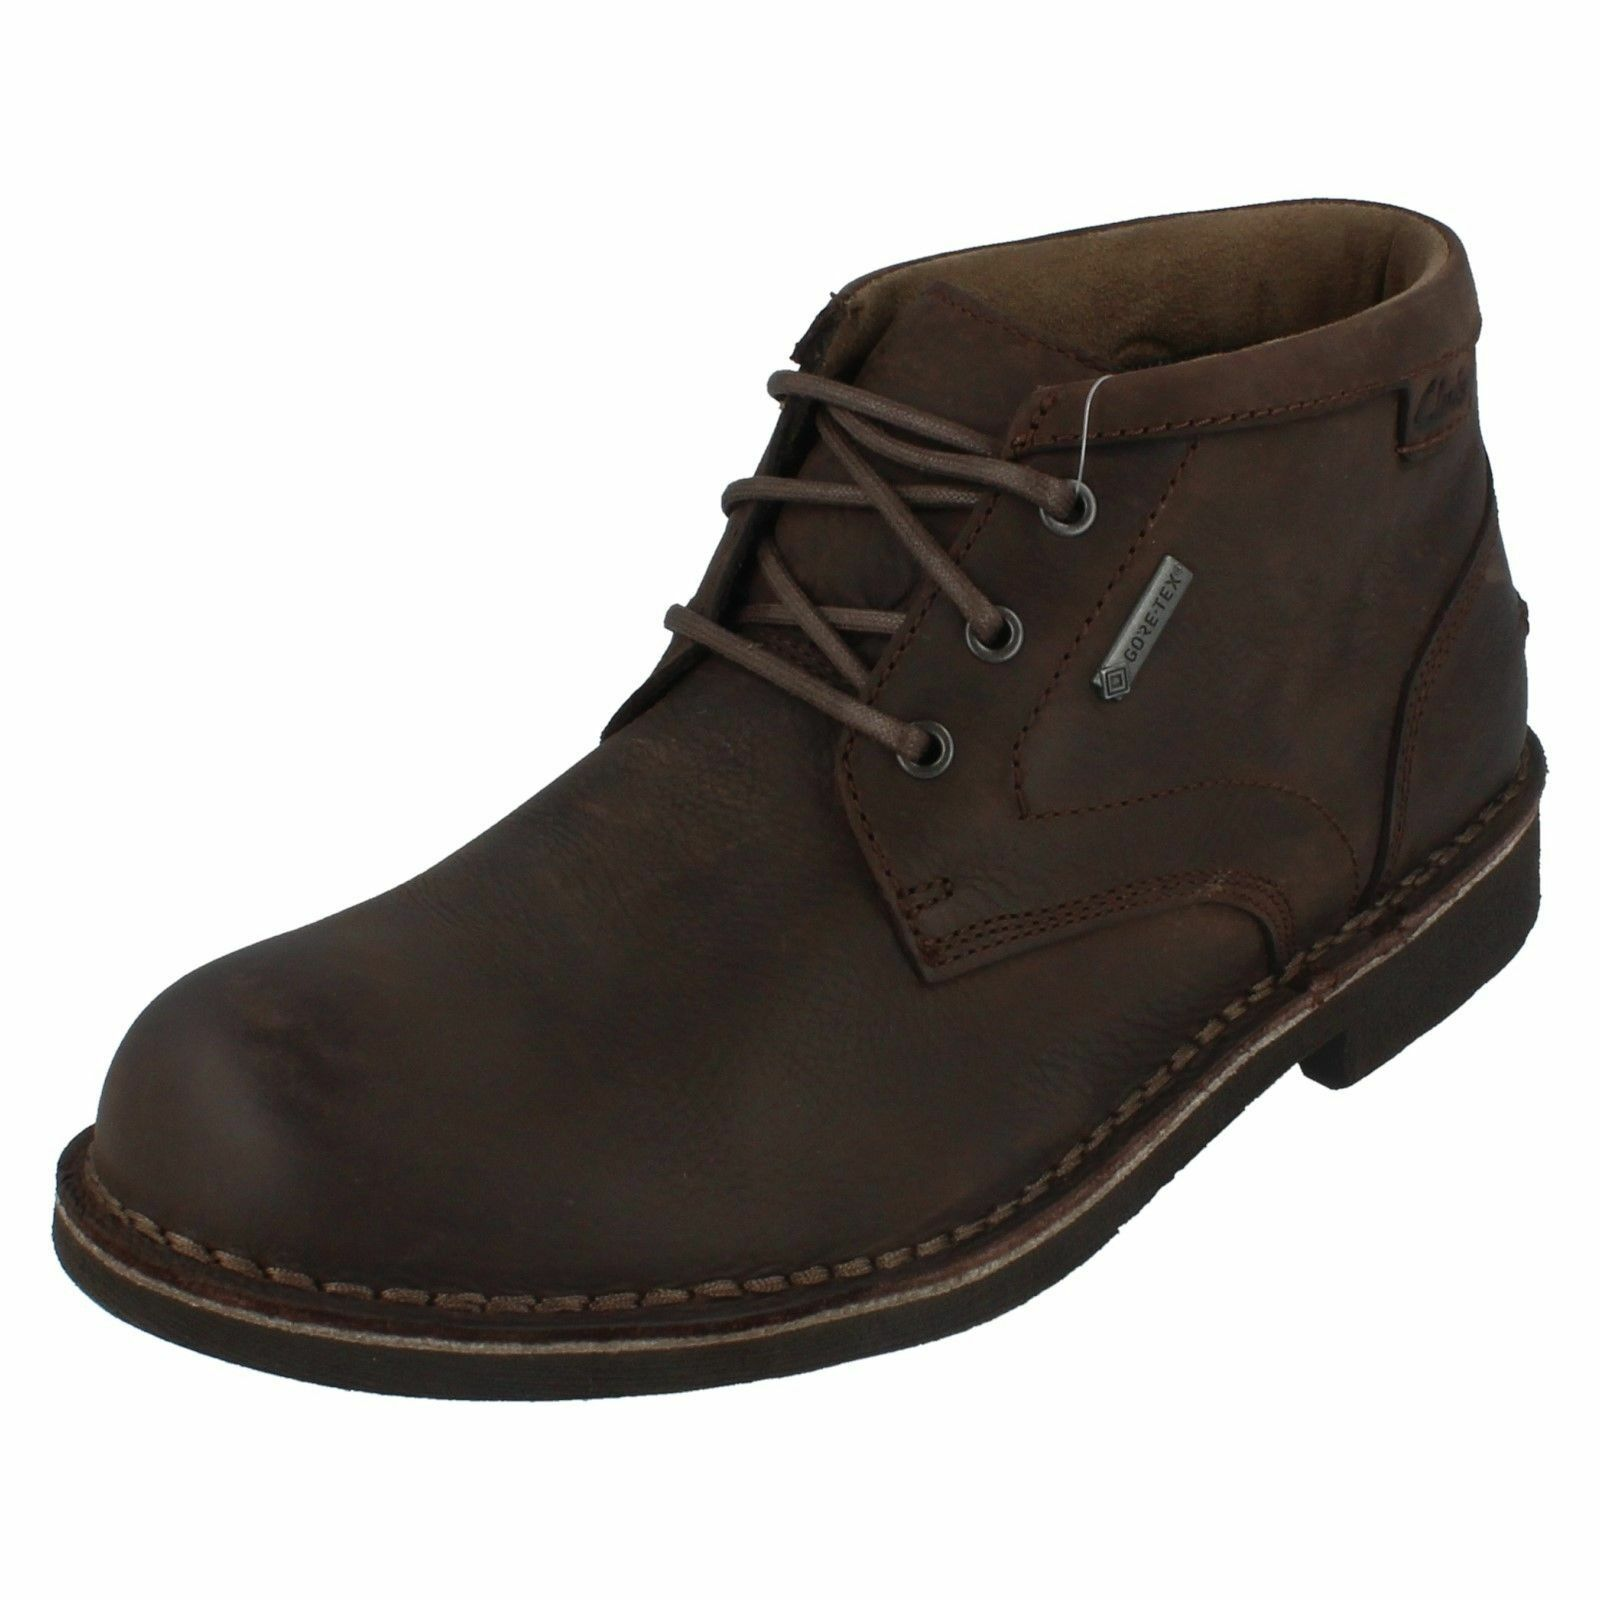 Clarks Mens Lawes Mid GTX Dark Brown Leather Ankle Boots G Fit (R29A)